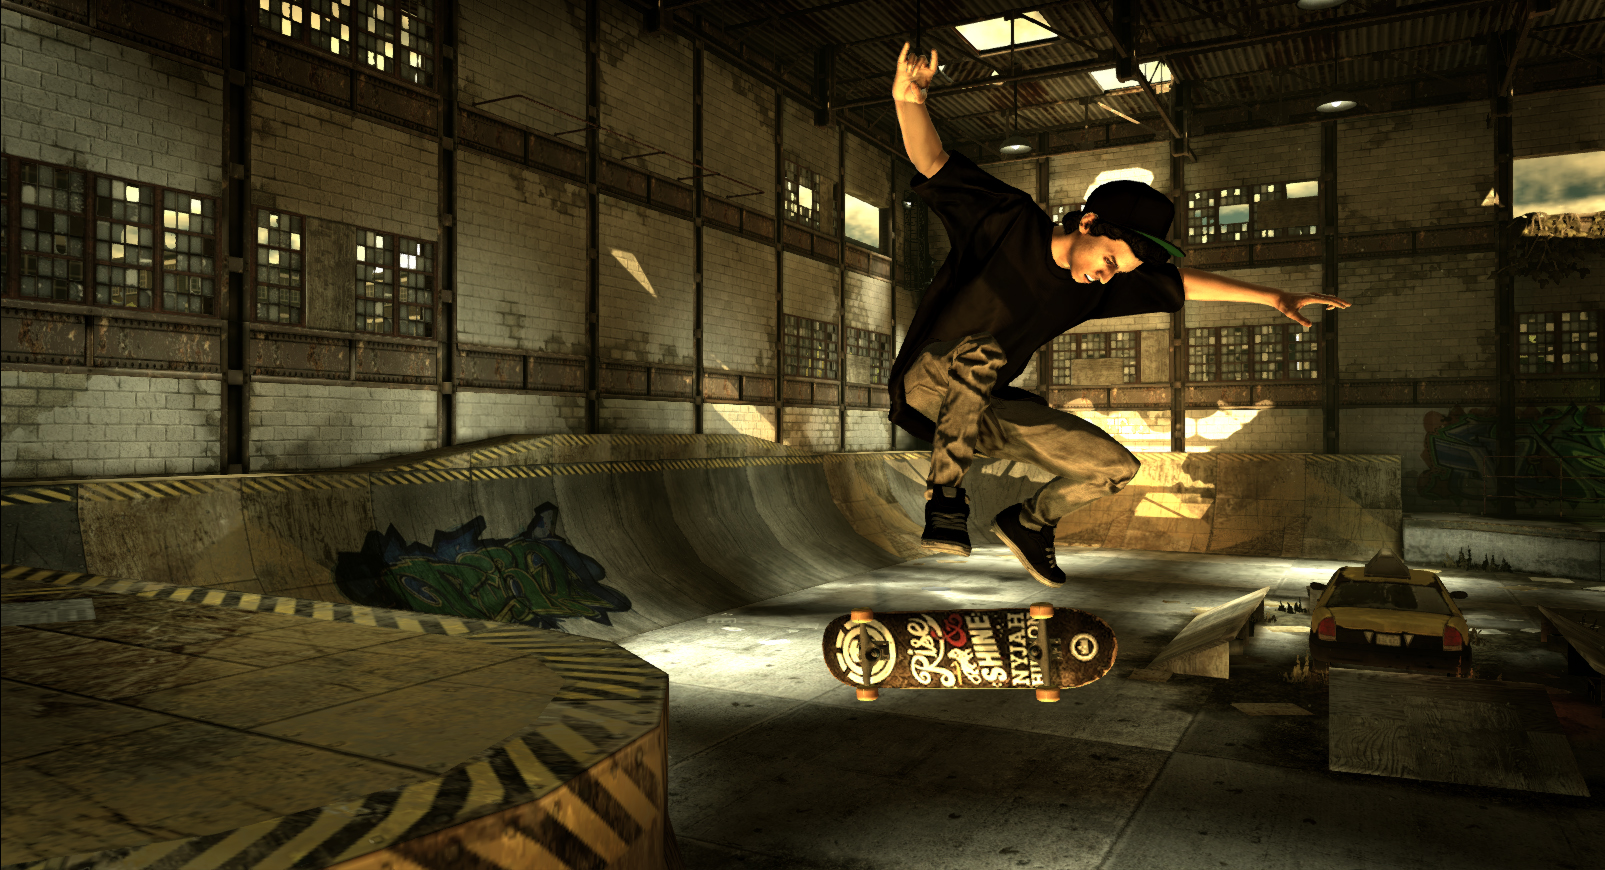 Tony Hawk's Pro Skater HD Will Be Removed From Steam